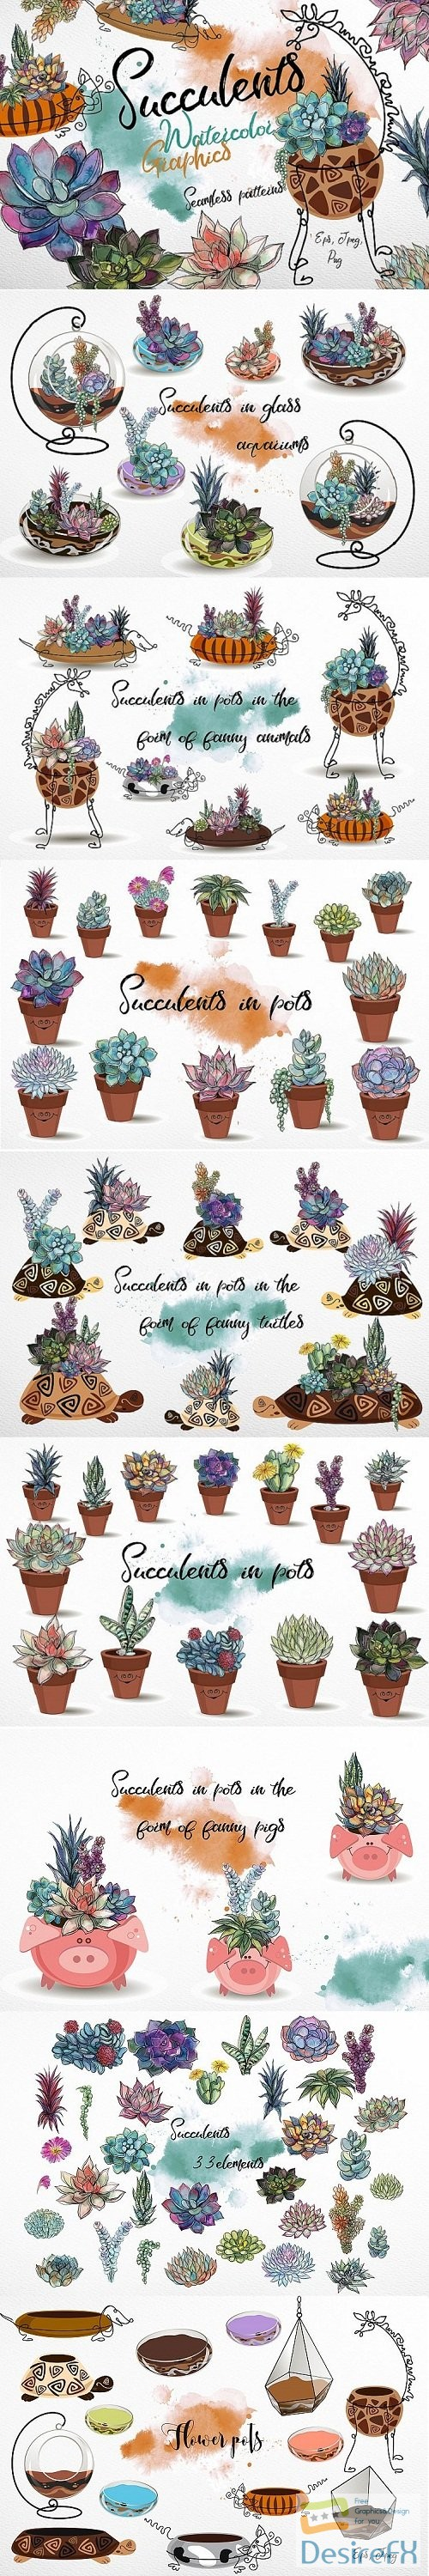 photoshop - Succulents. Watercolor. Graphics - 173334